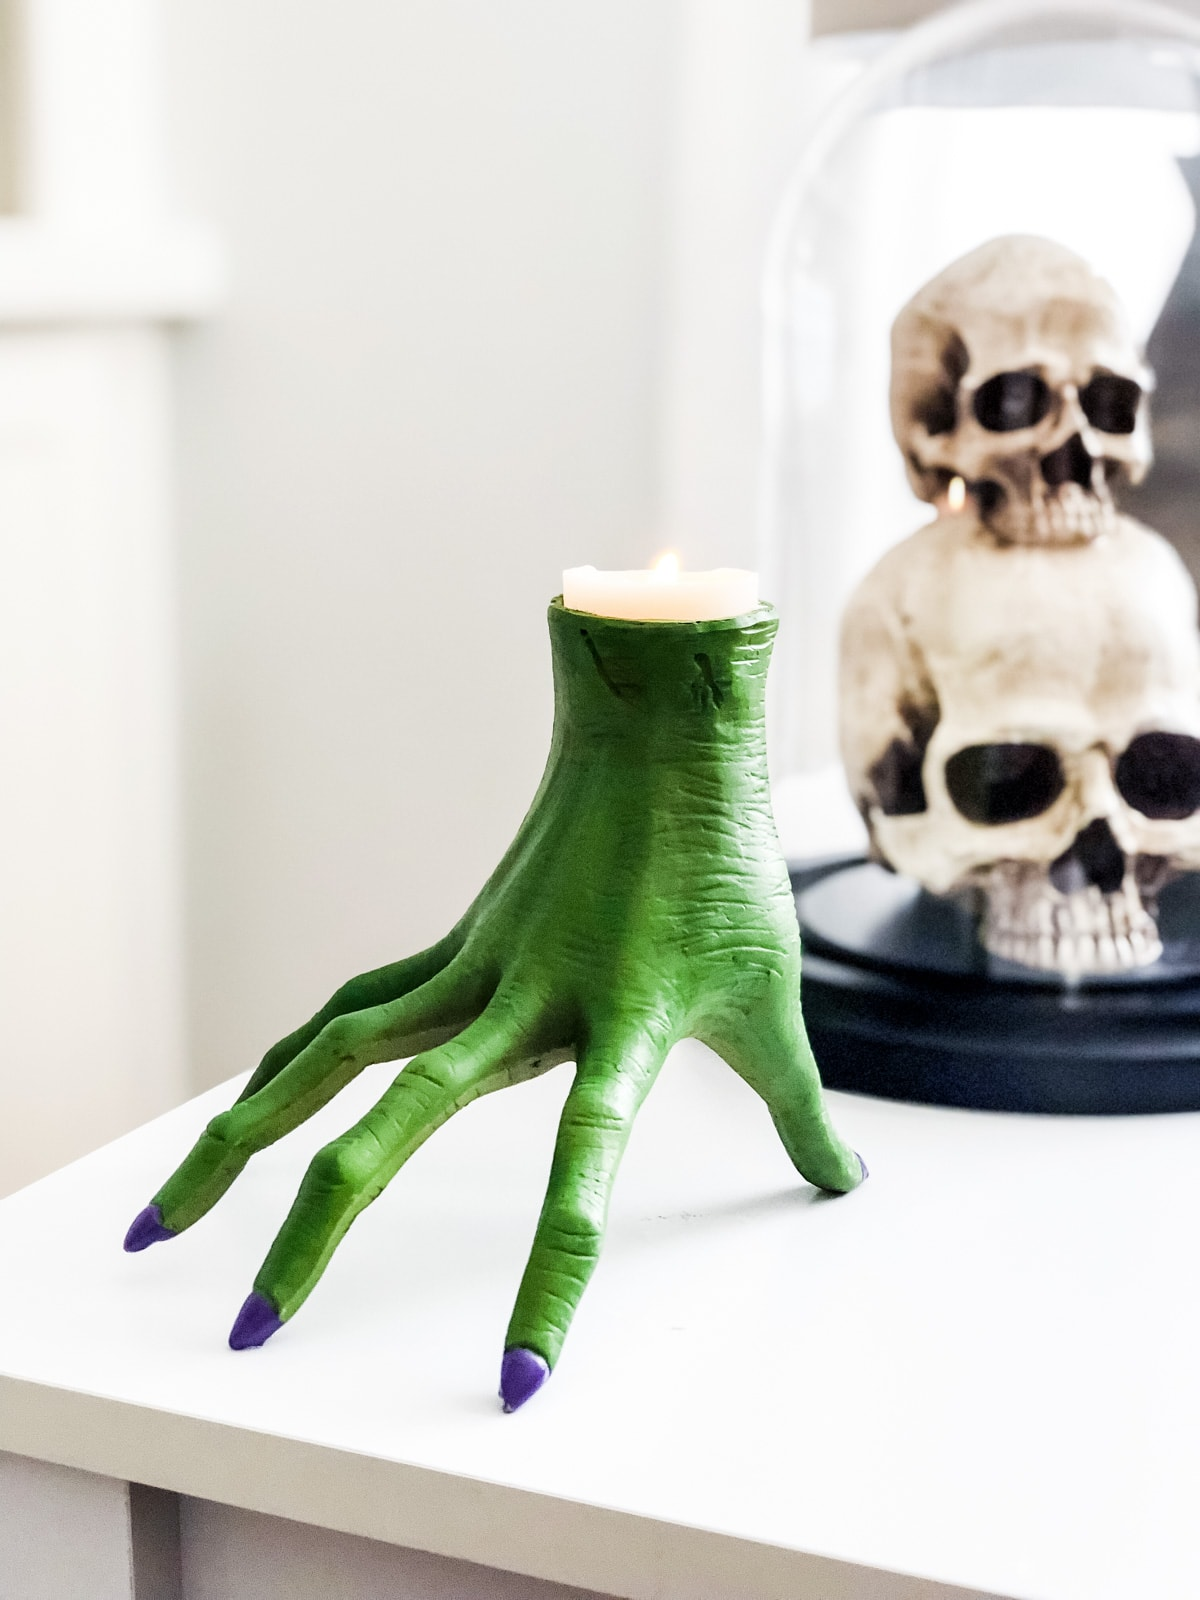 Love this candle holder! So spooky!